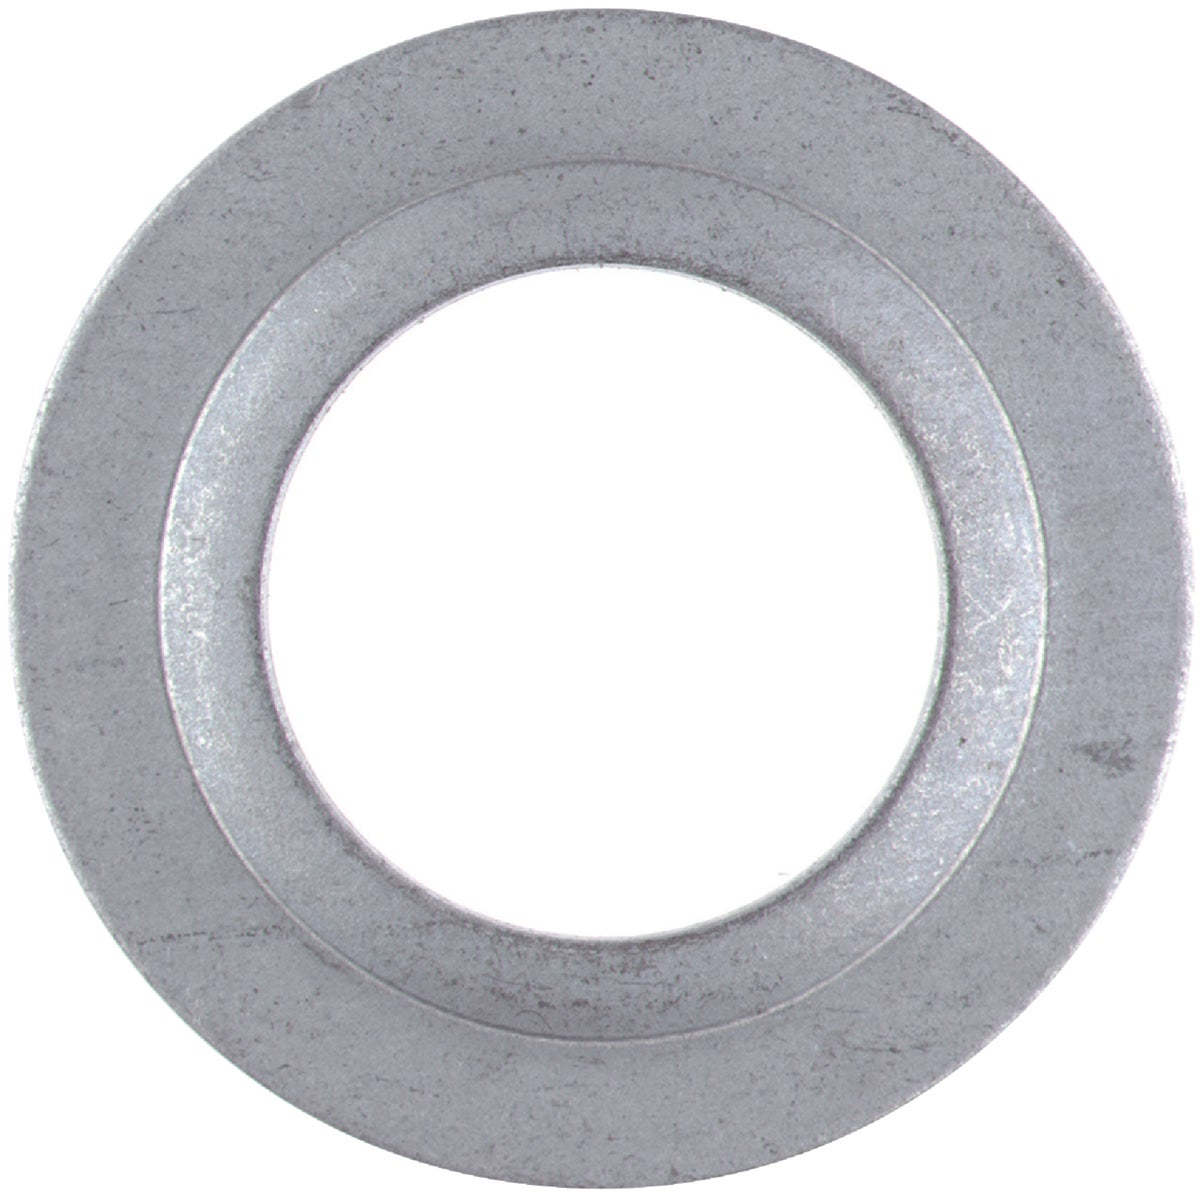 1X3/4 REDUCE WASHER - WA1324 by Thomas & Betts